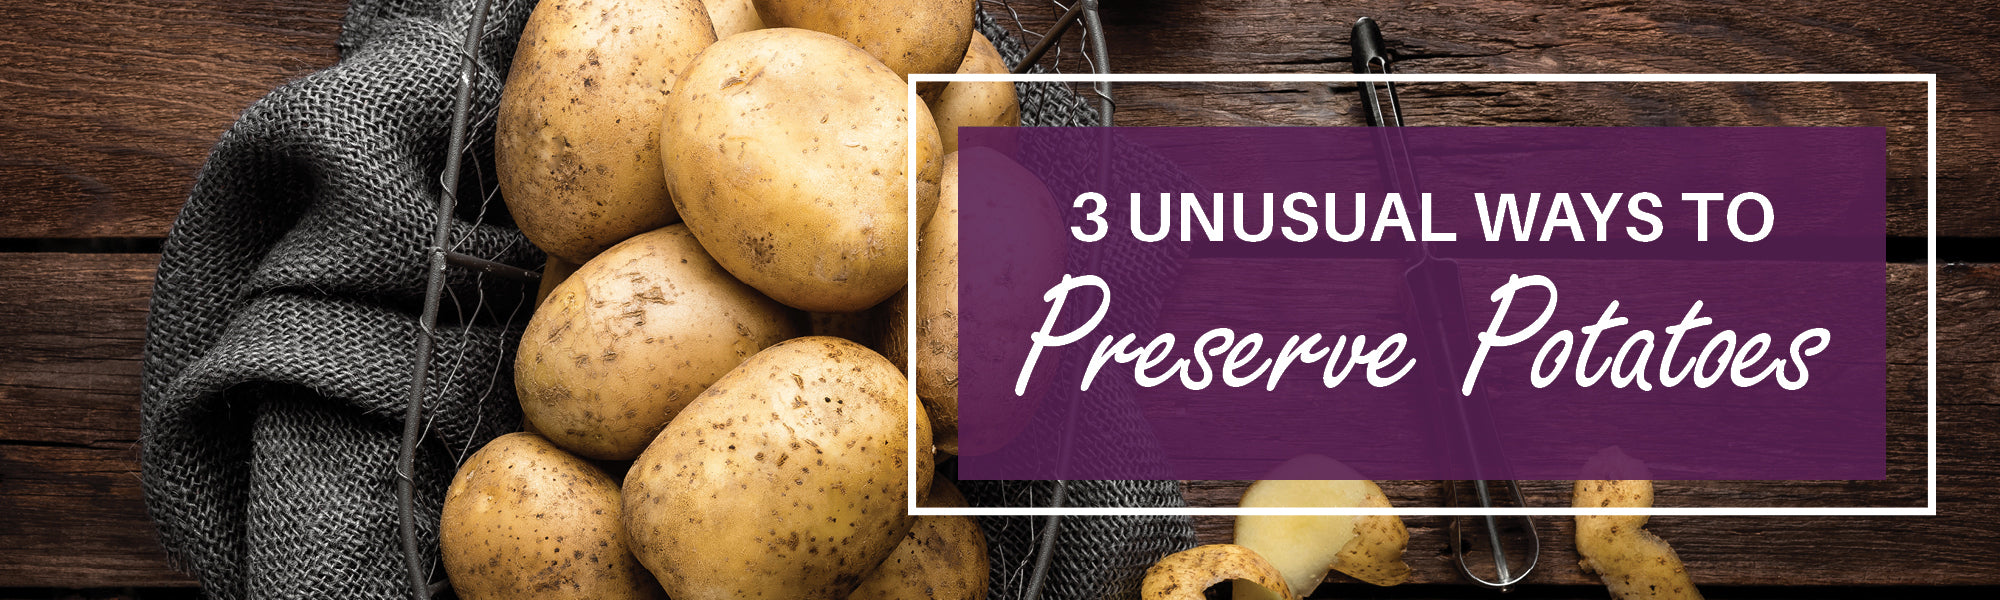 Three Unusual Ways to Preserve Potatoes